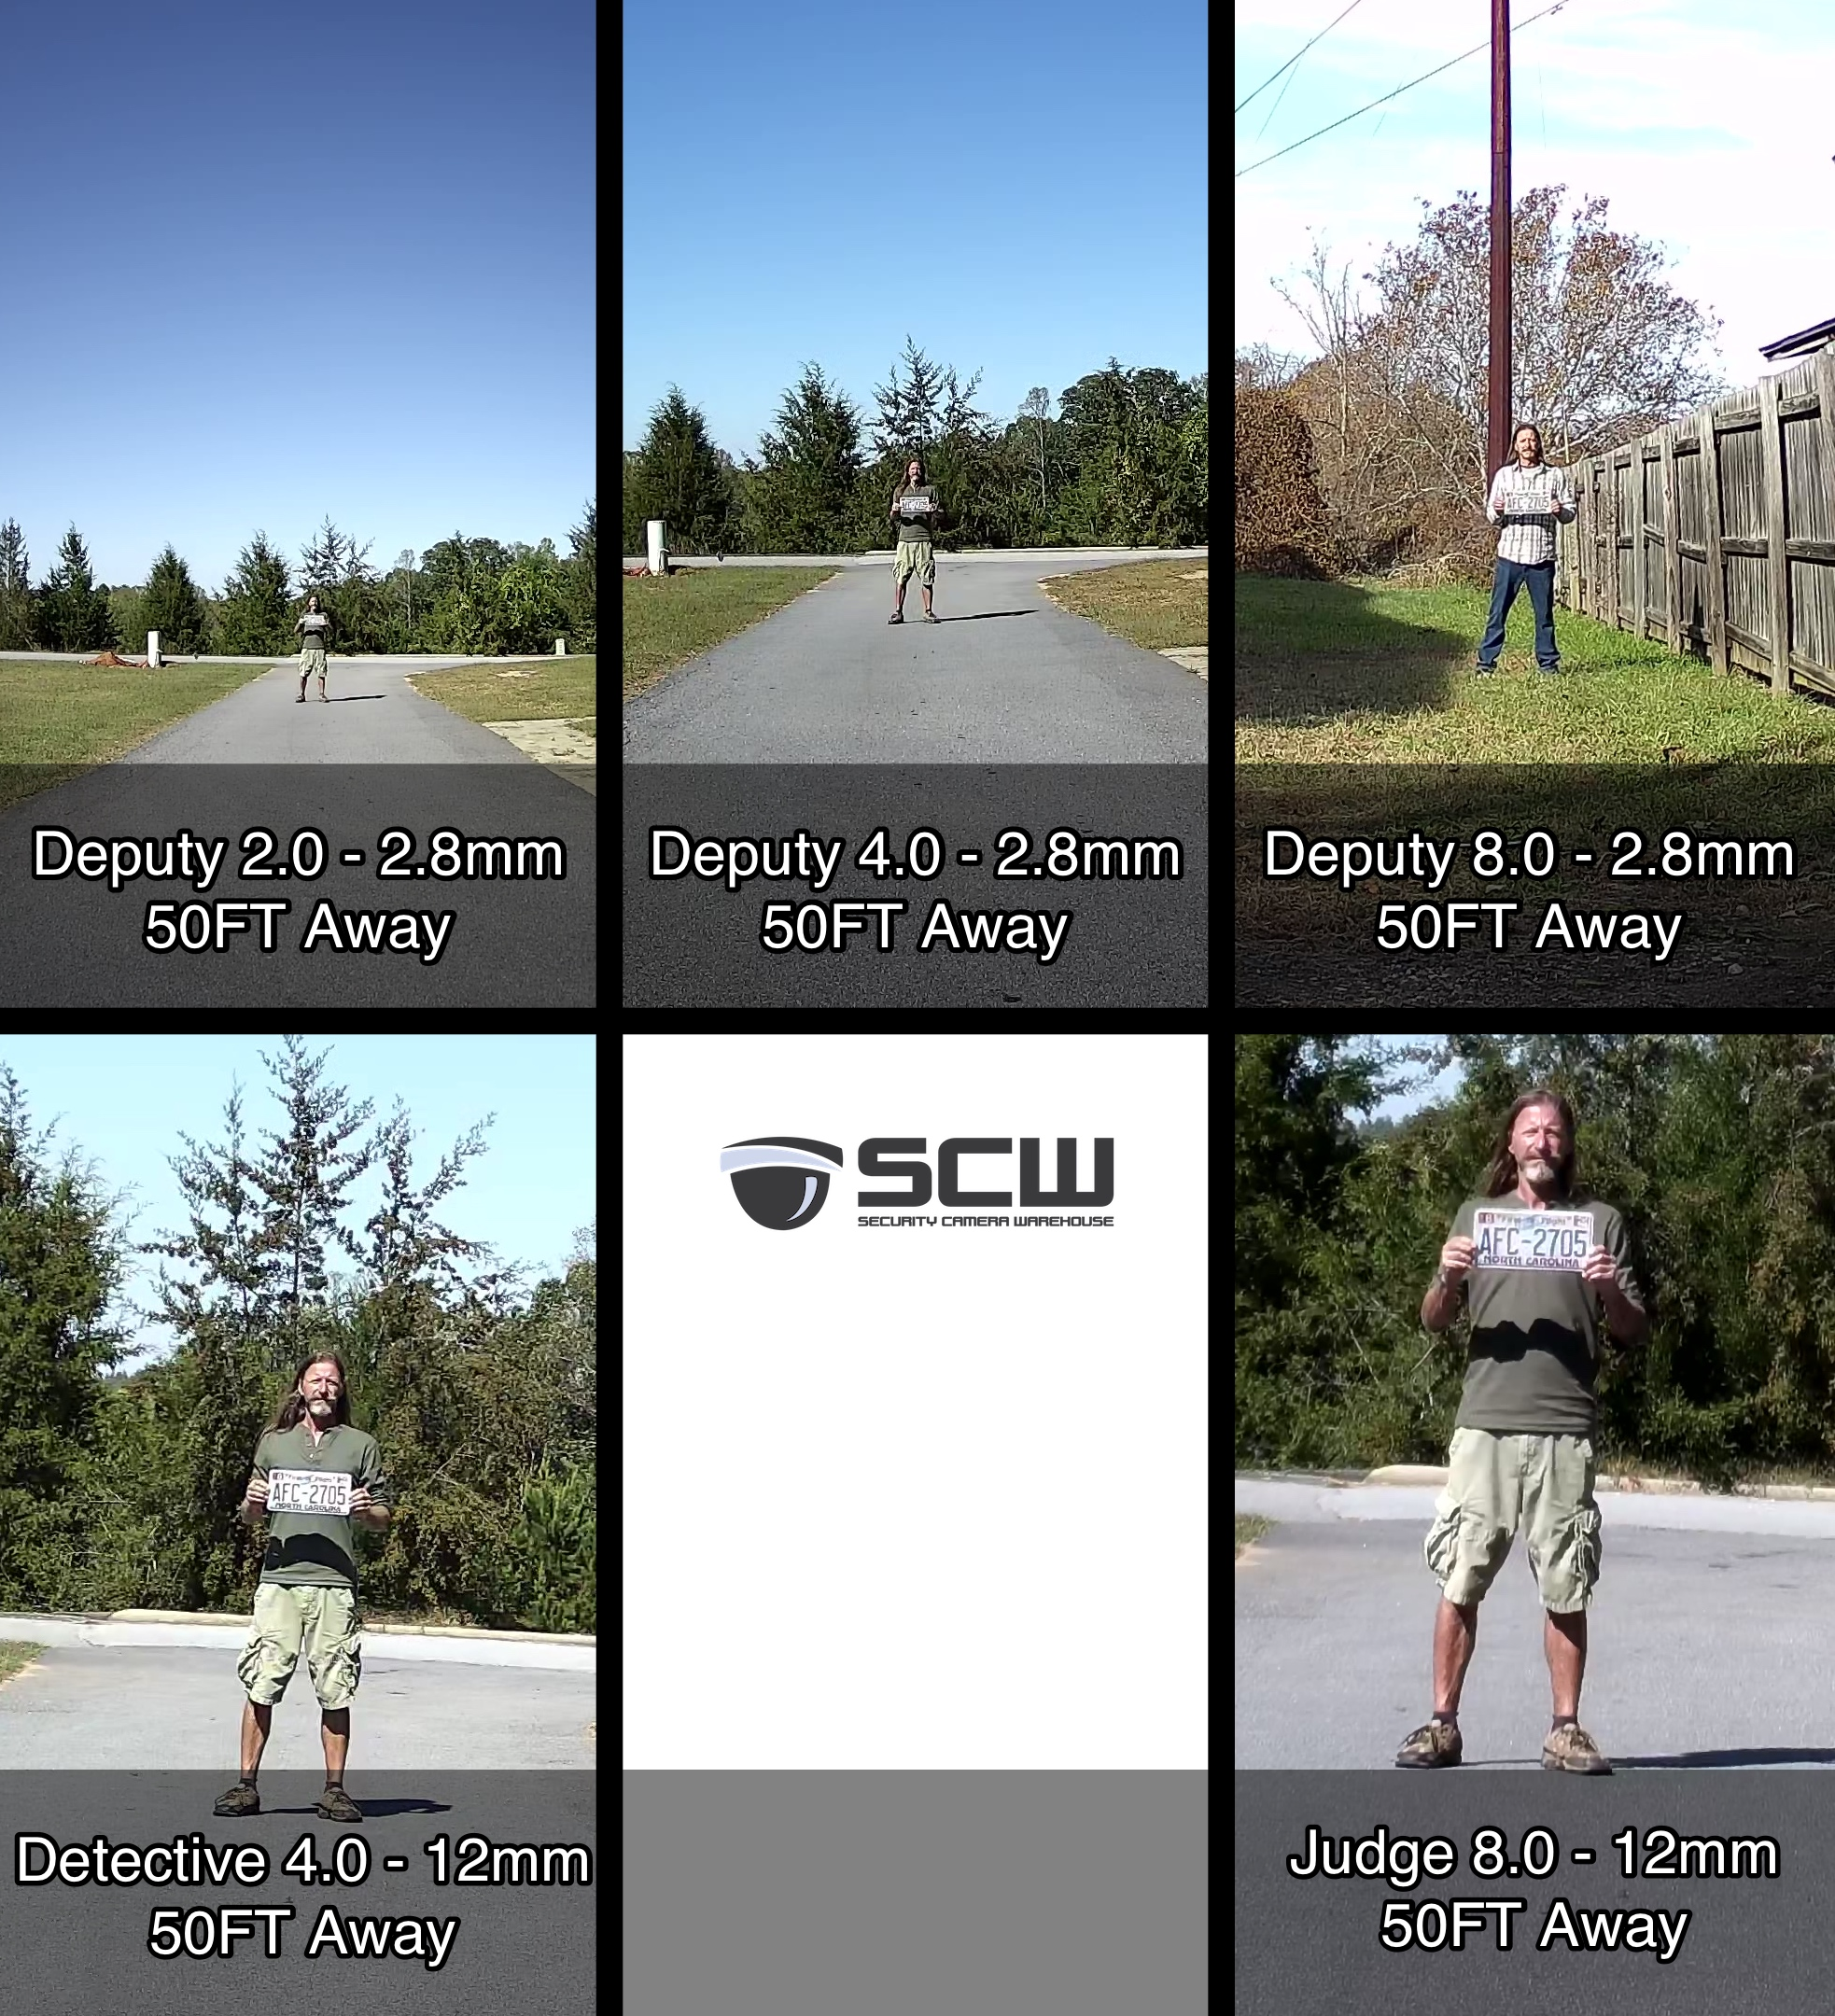 Comparison of SCW Dome Cameras